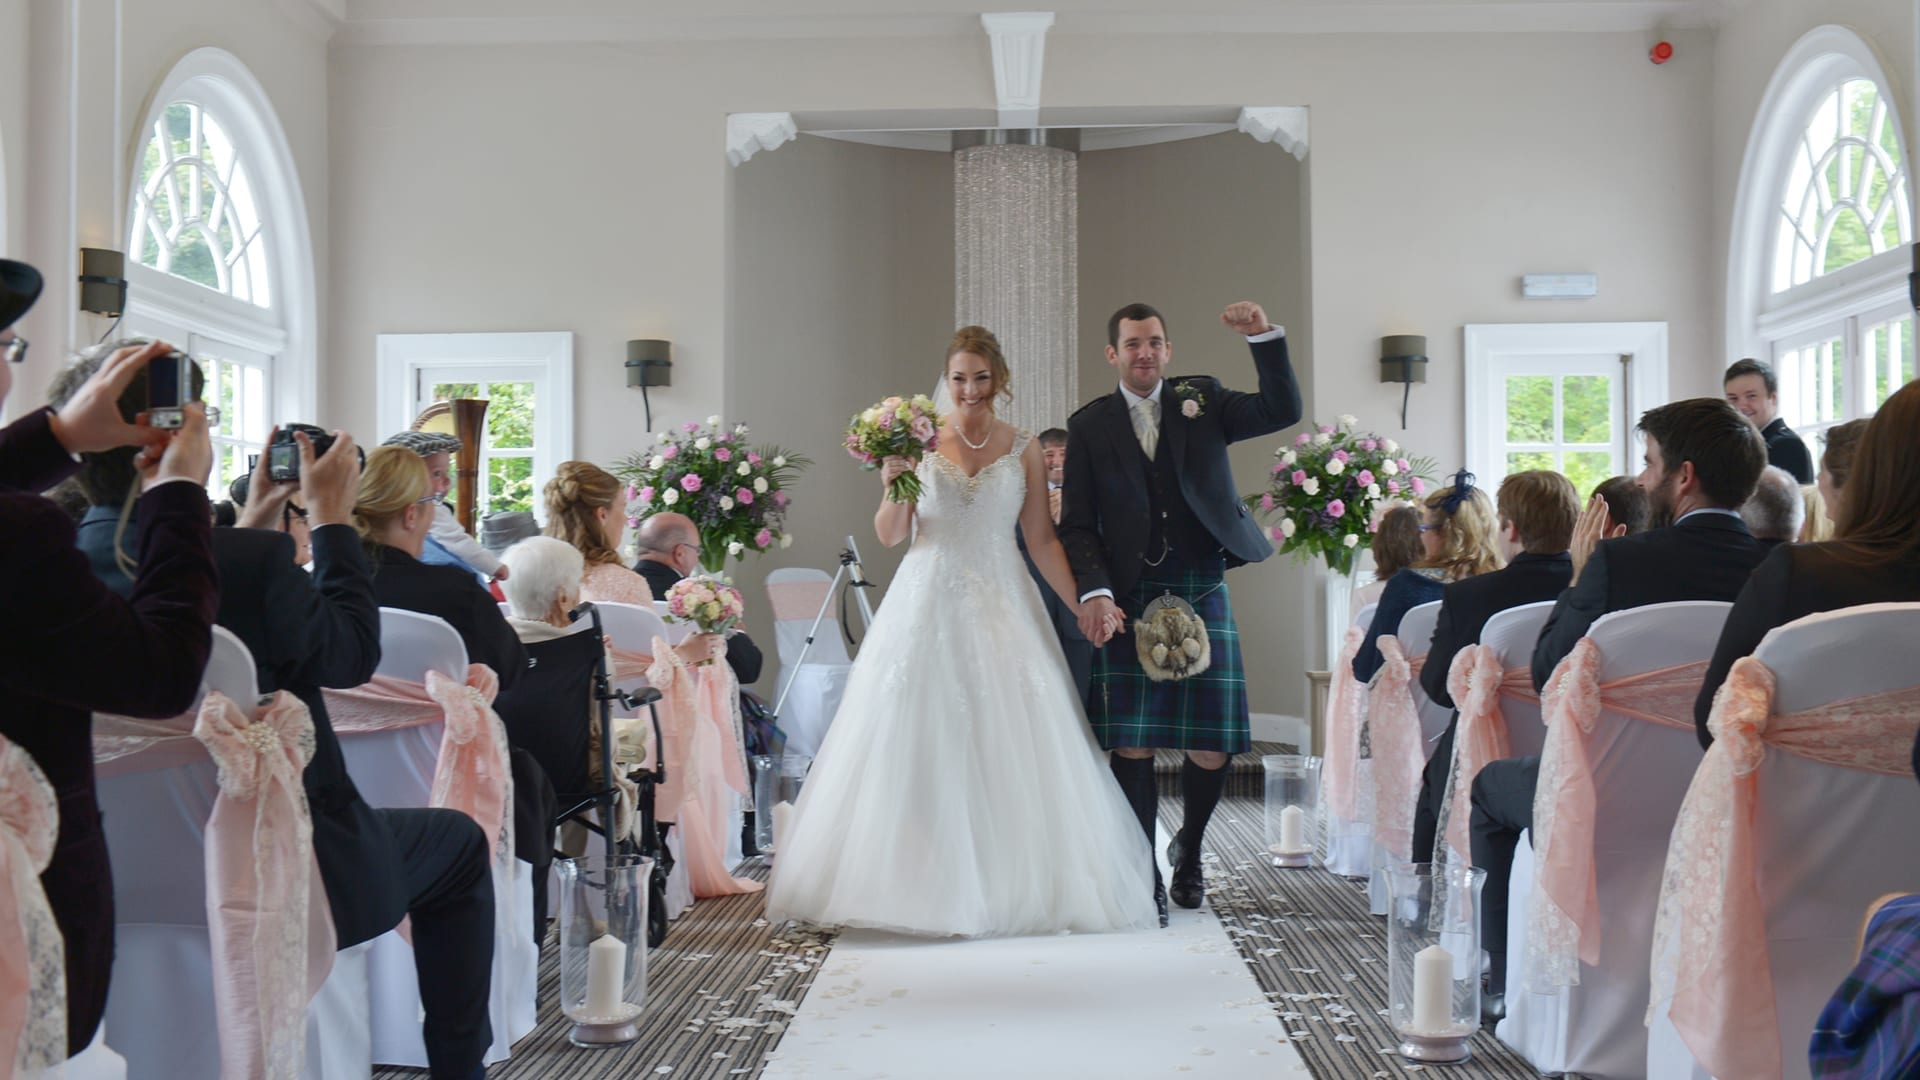 Wedding ceremony in the Elibank Suite at Barony Castle